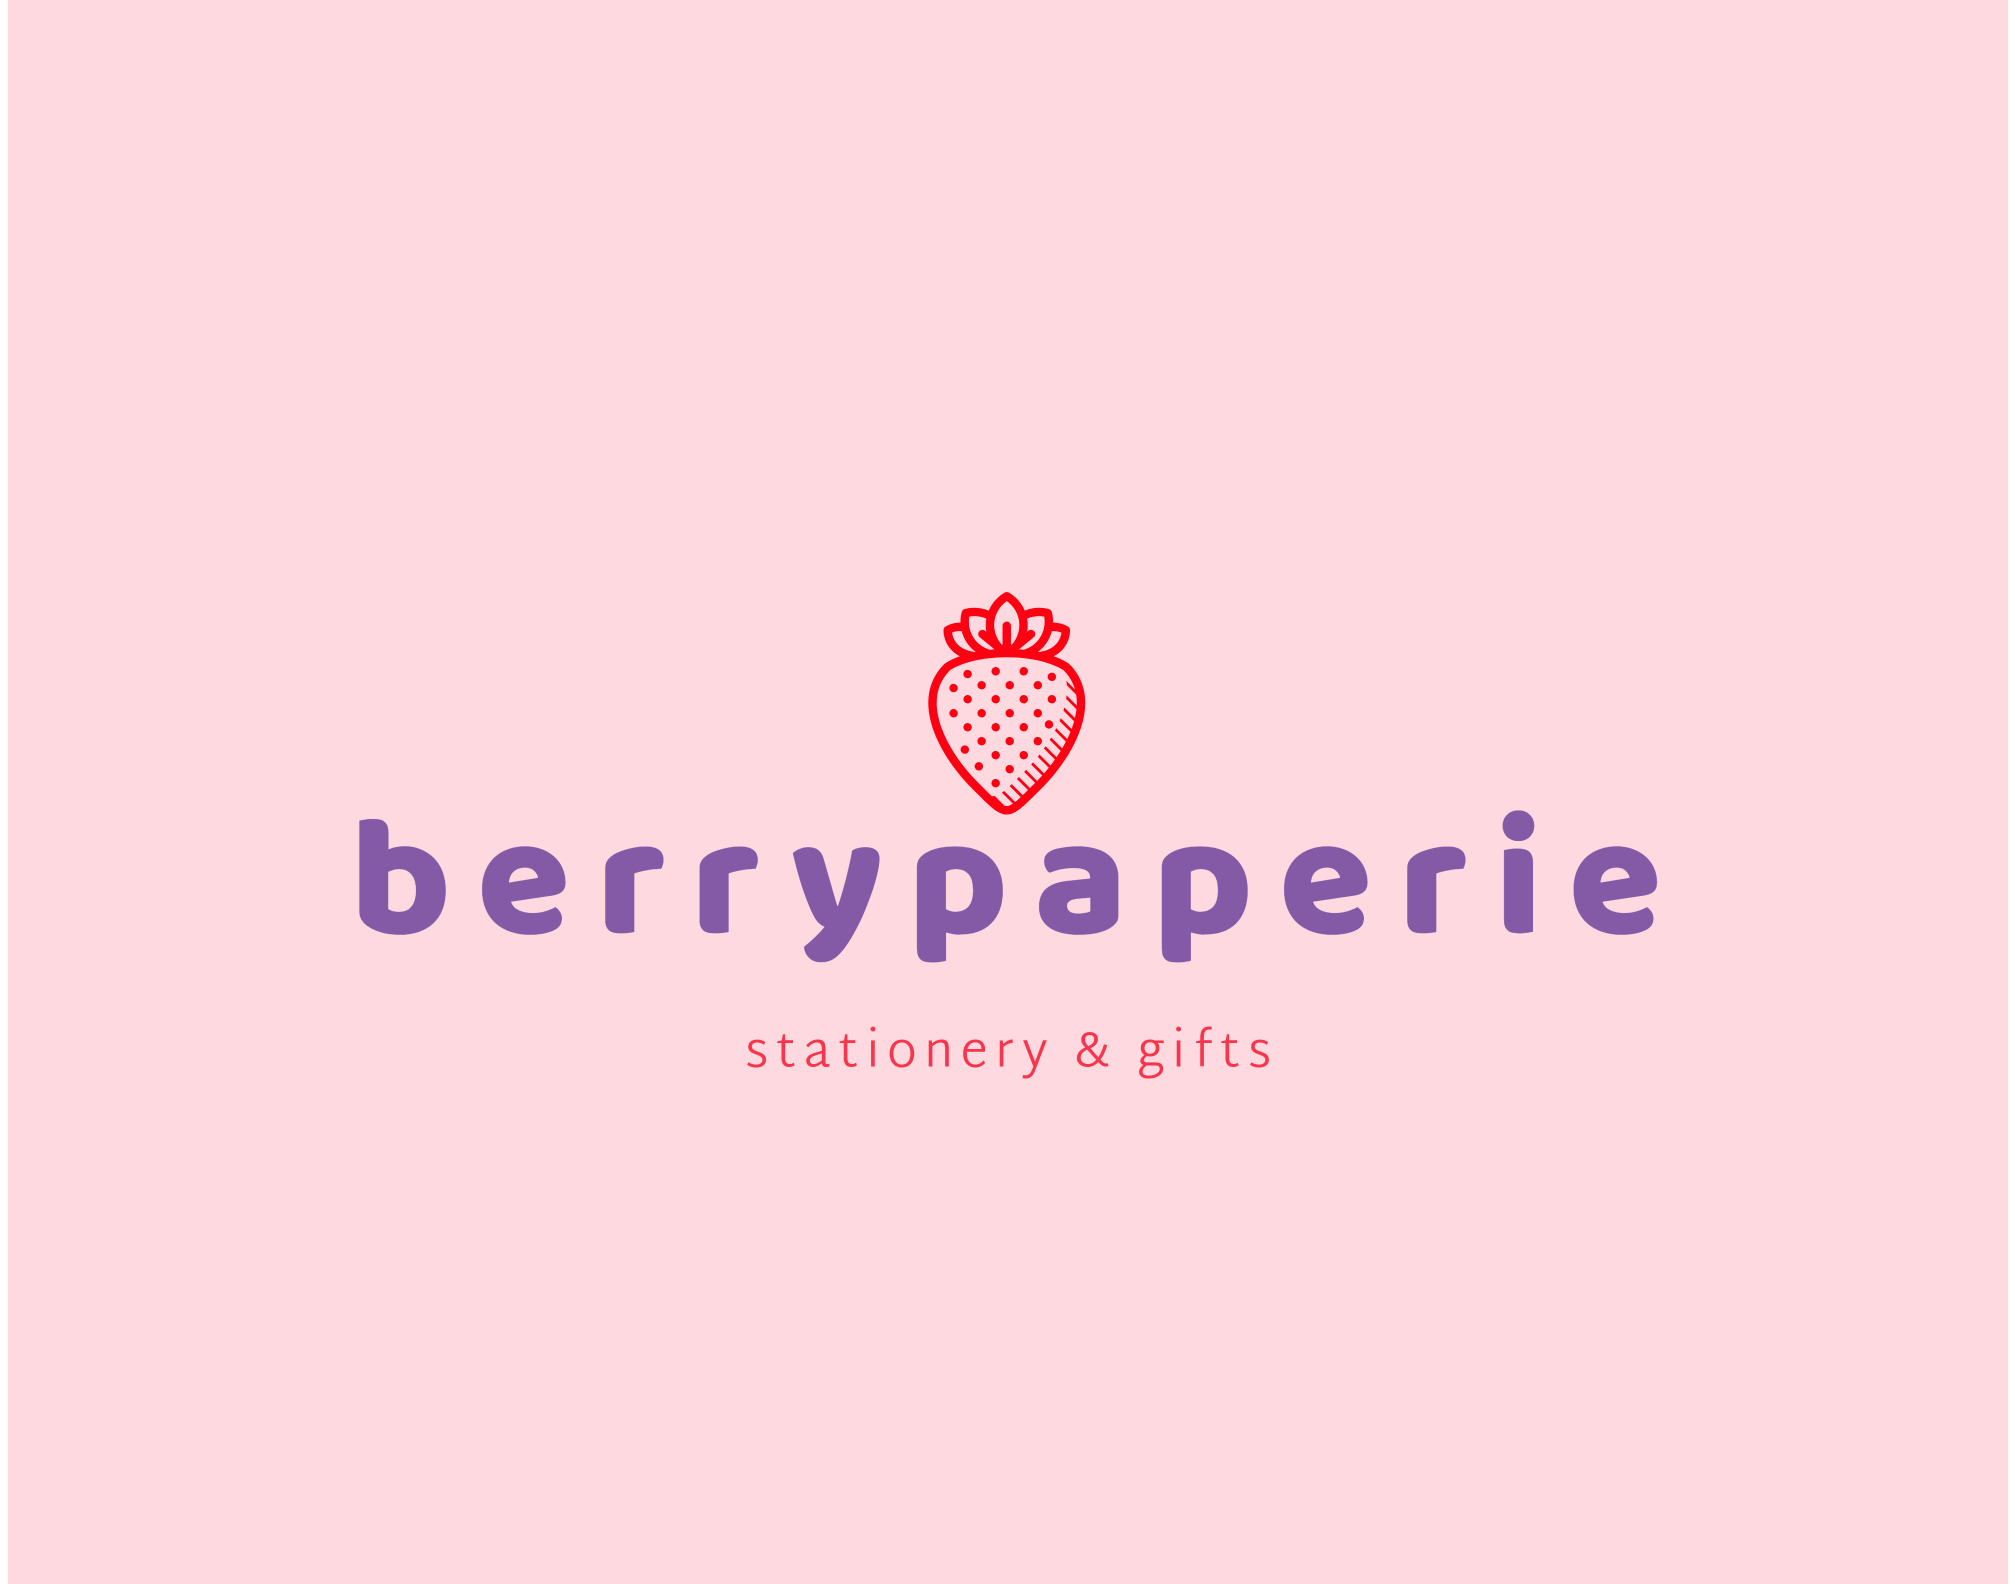 berrypaperielogo2.png